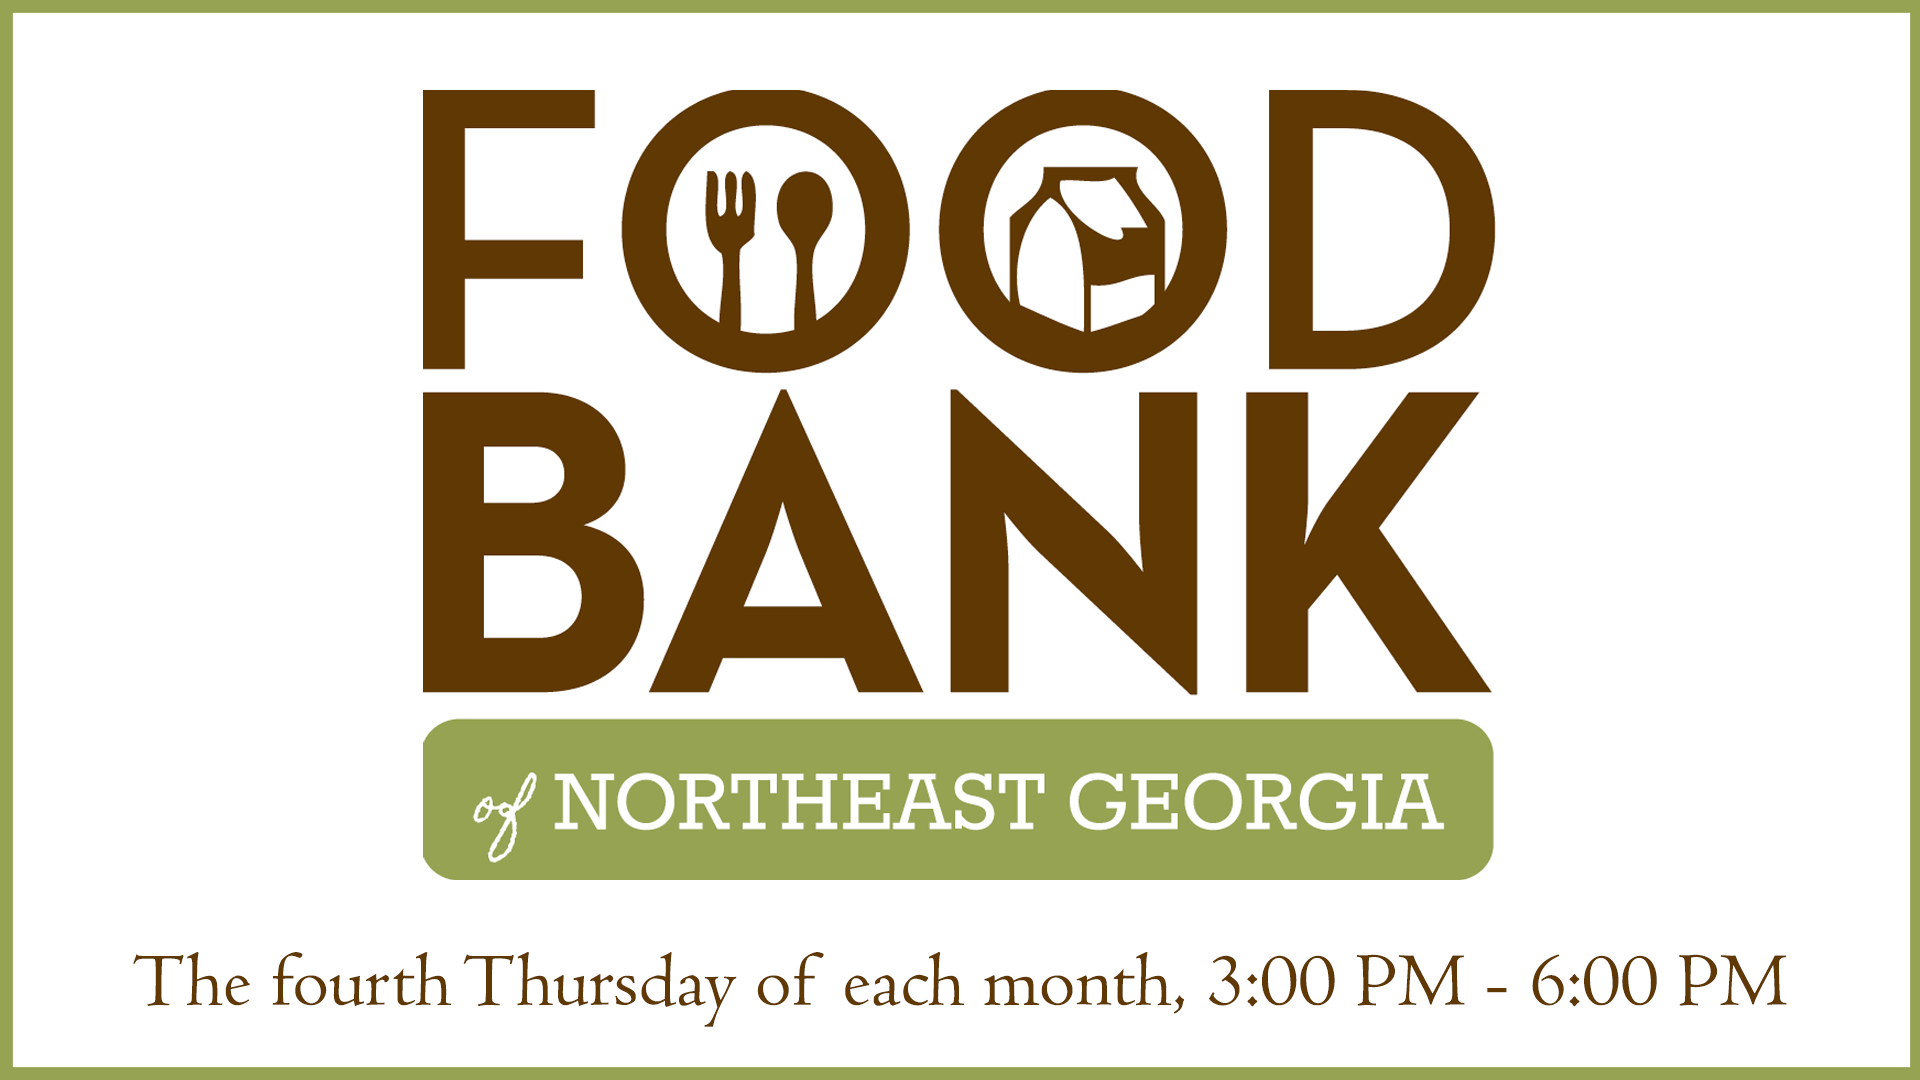 Food Bank - Every fourth Thursday of the month, we hold a food bank for those in need of assistance on the Grace Fellowship Campus from 3:00-6:00 PM.